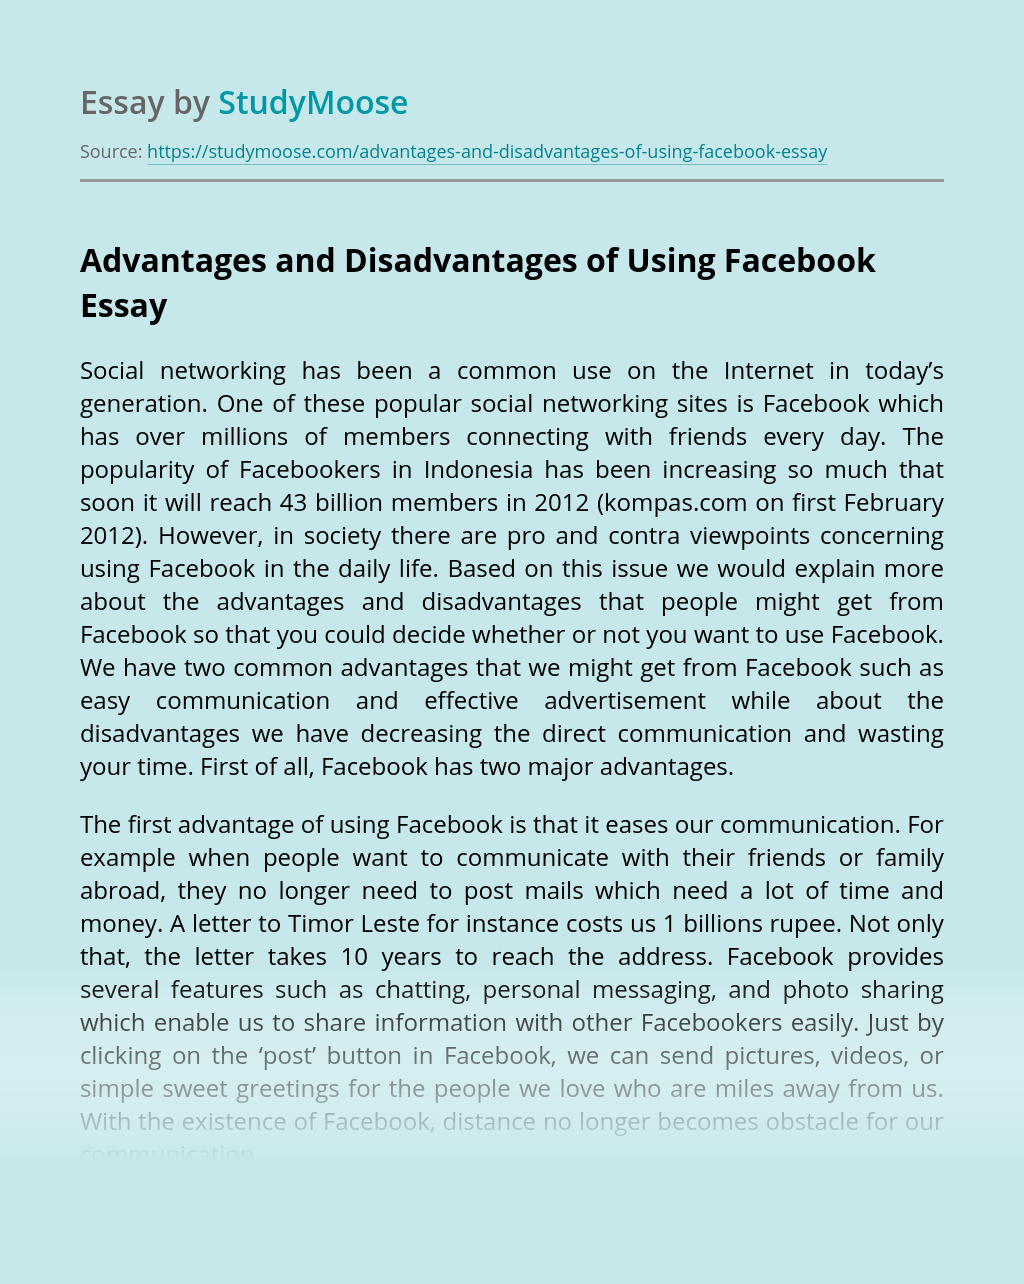 Advantages and Disadvantages of Using Facebook